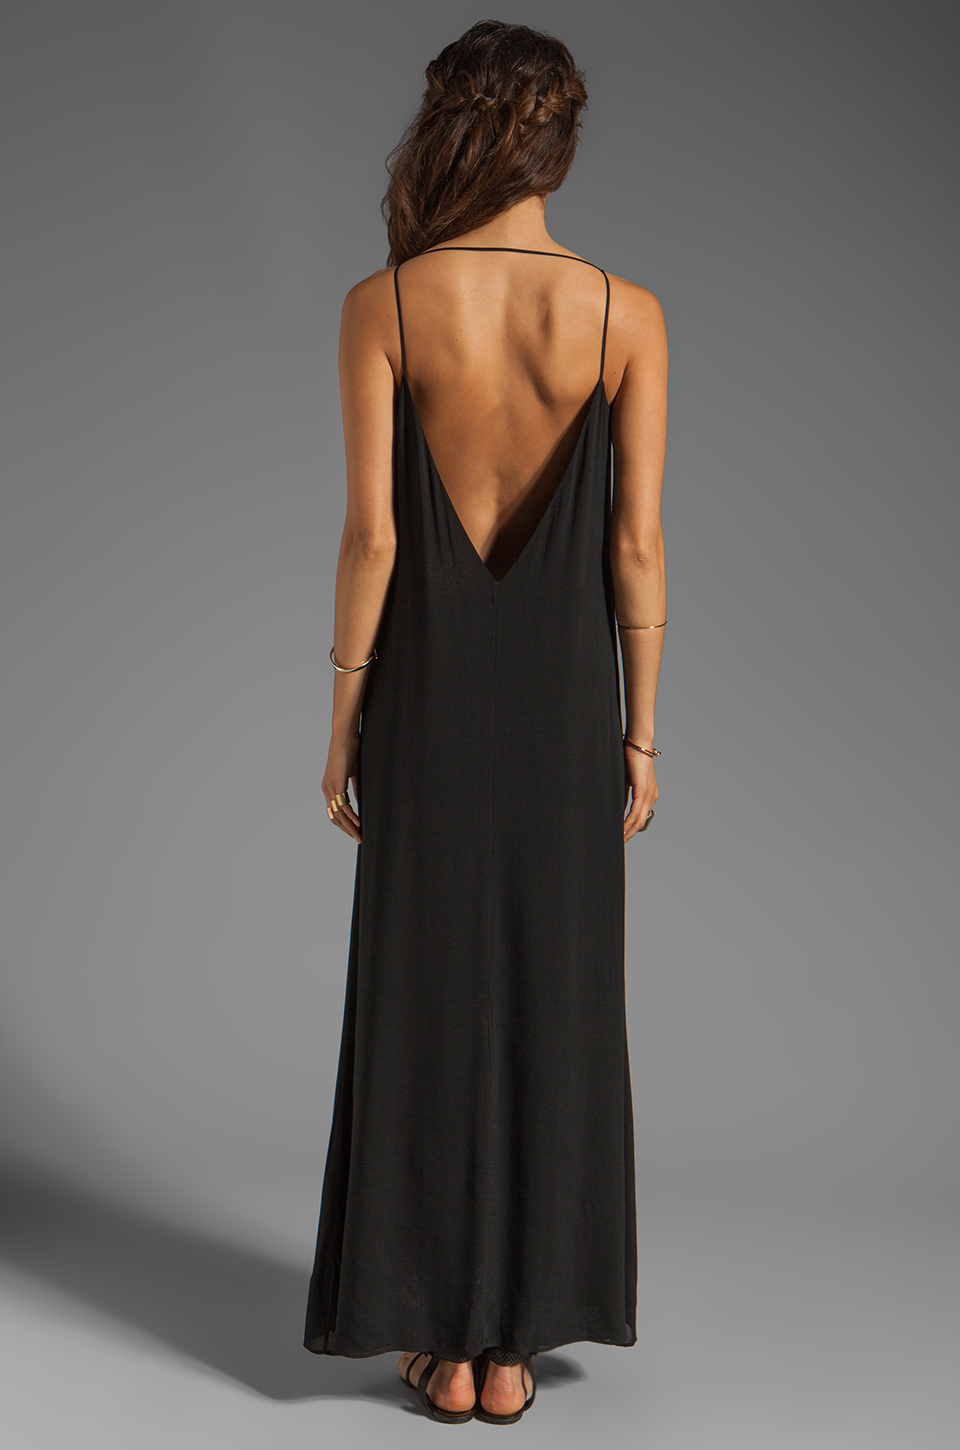 Boulee Isabella Maxi in Black